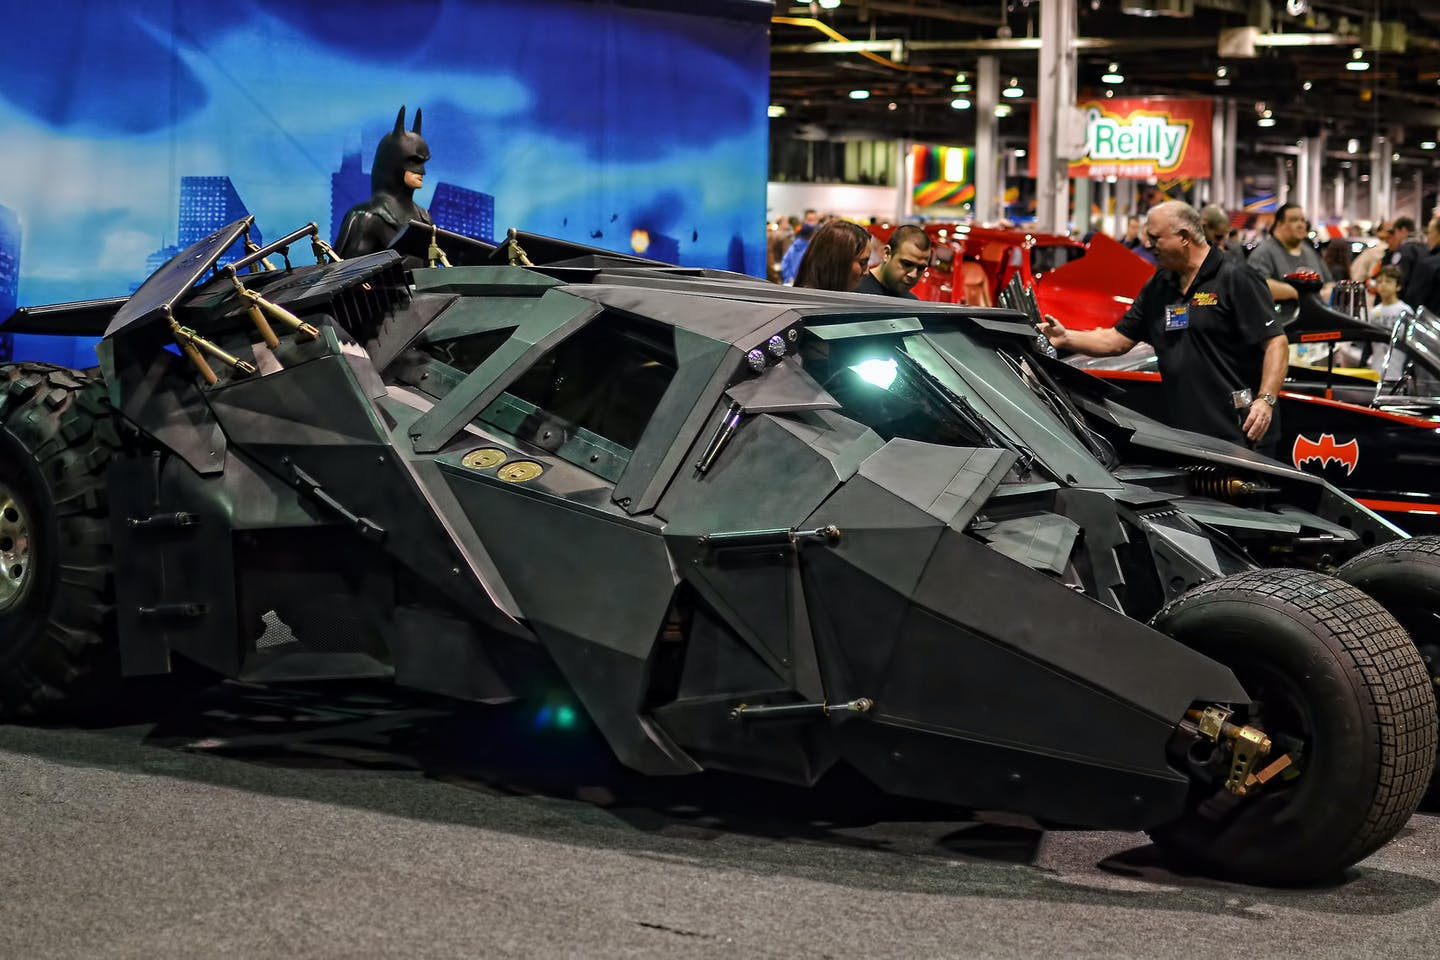 One Batmobile